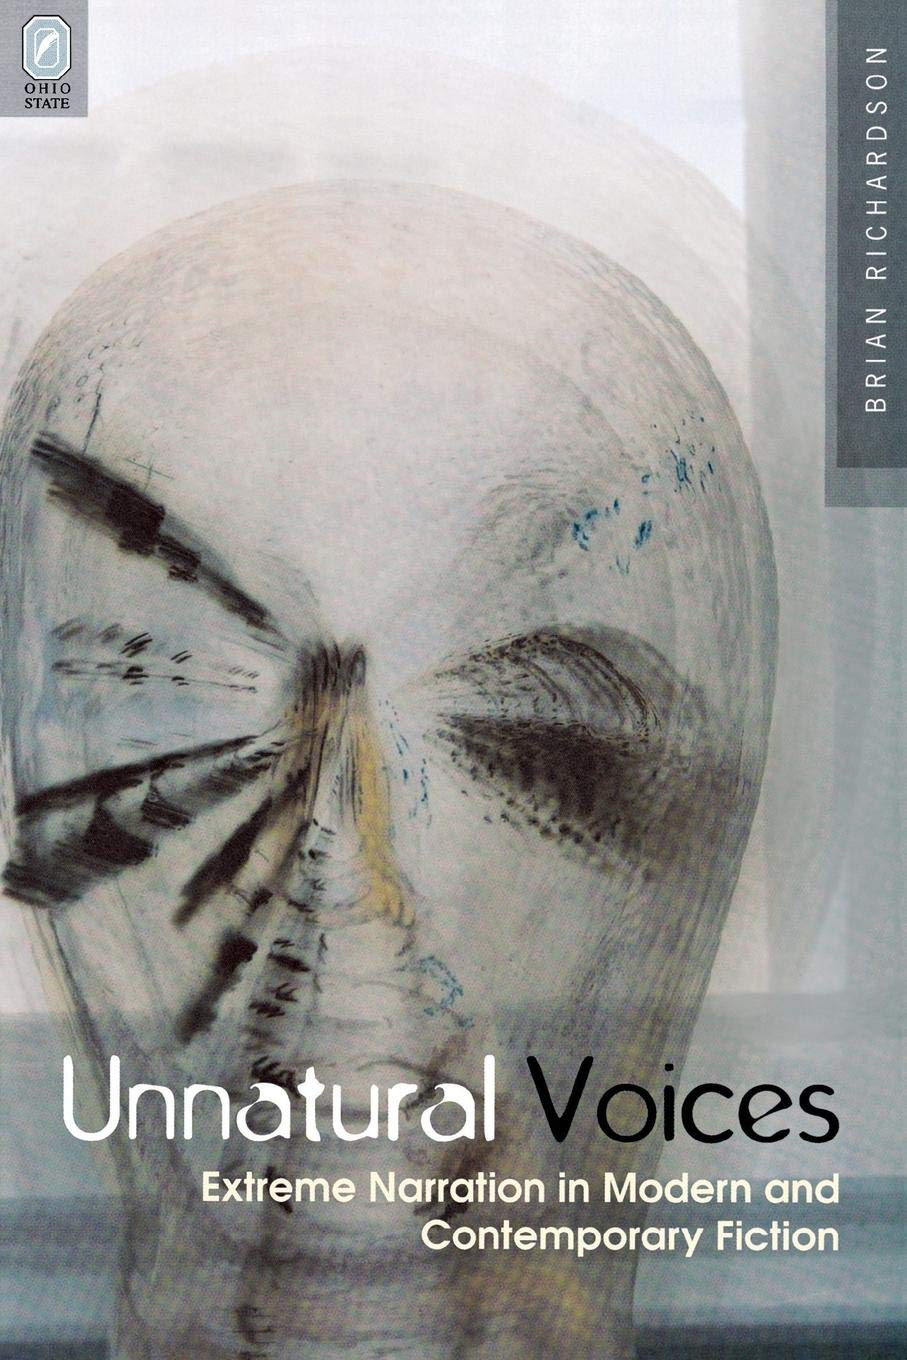 Download UNNATURAL VOICES: EXTREME NARRATION IN MODERN AND CONTEMPO (THEORY INTERPRETATION NARRATIV) pdf